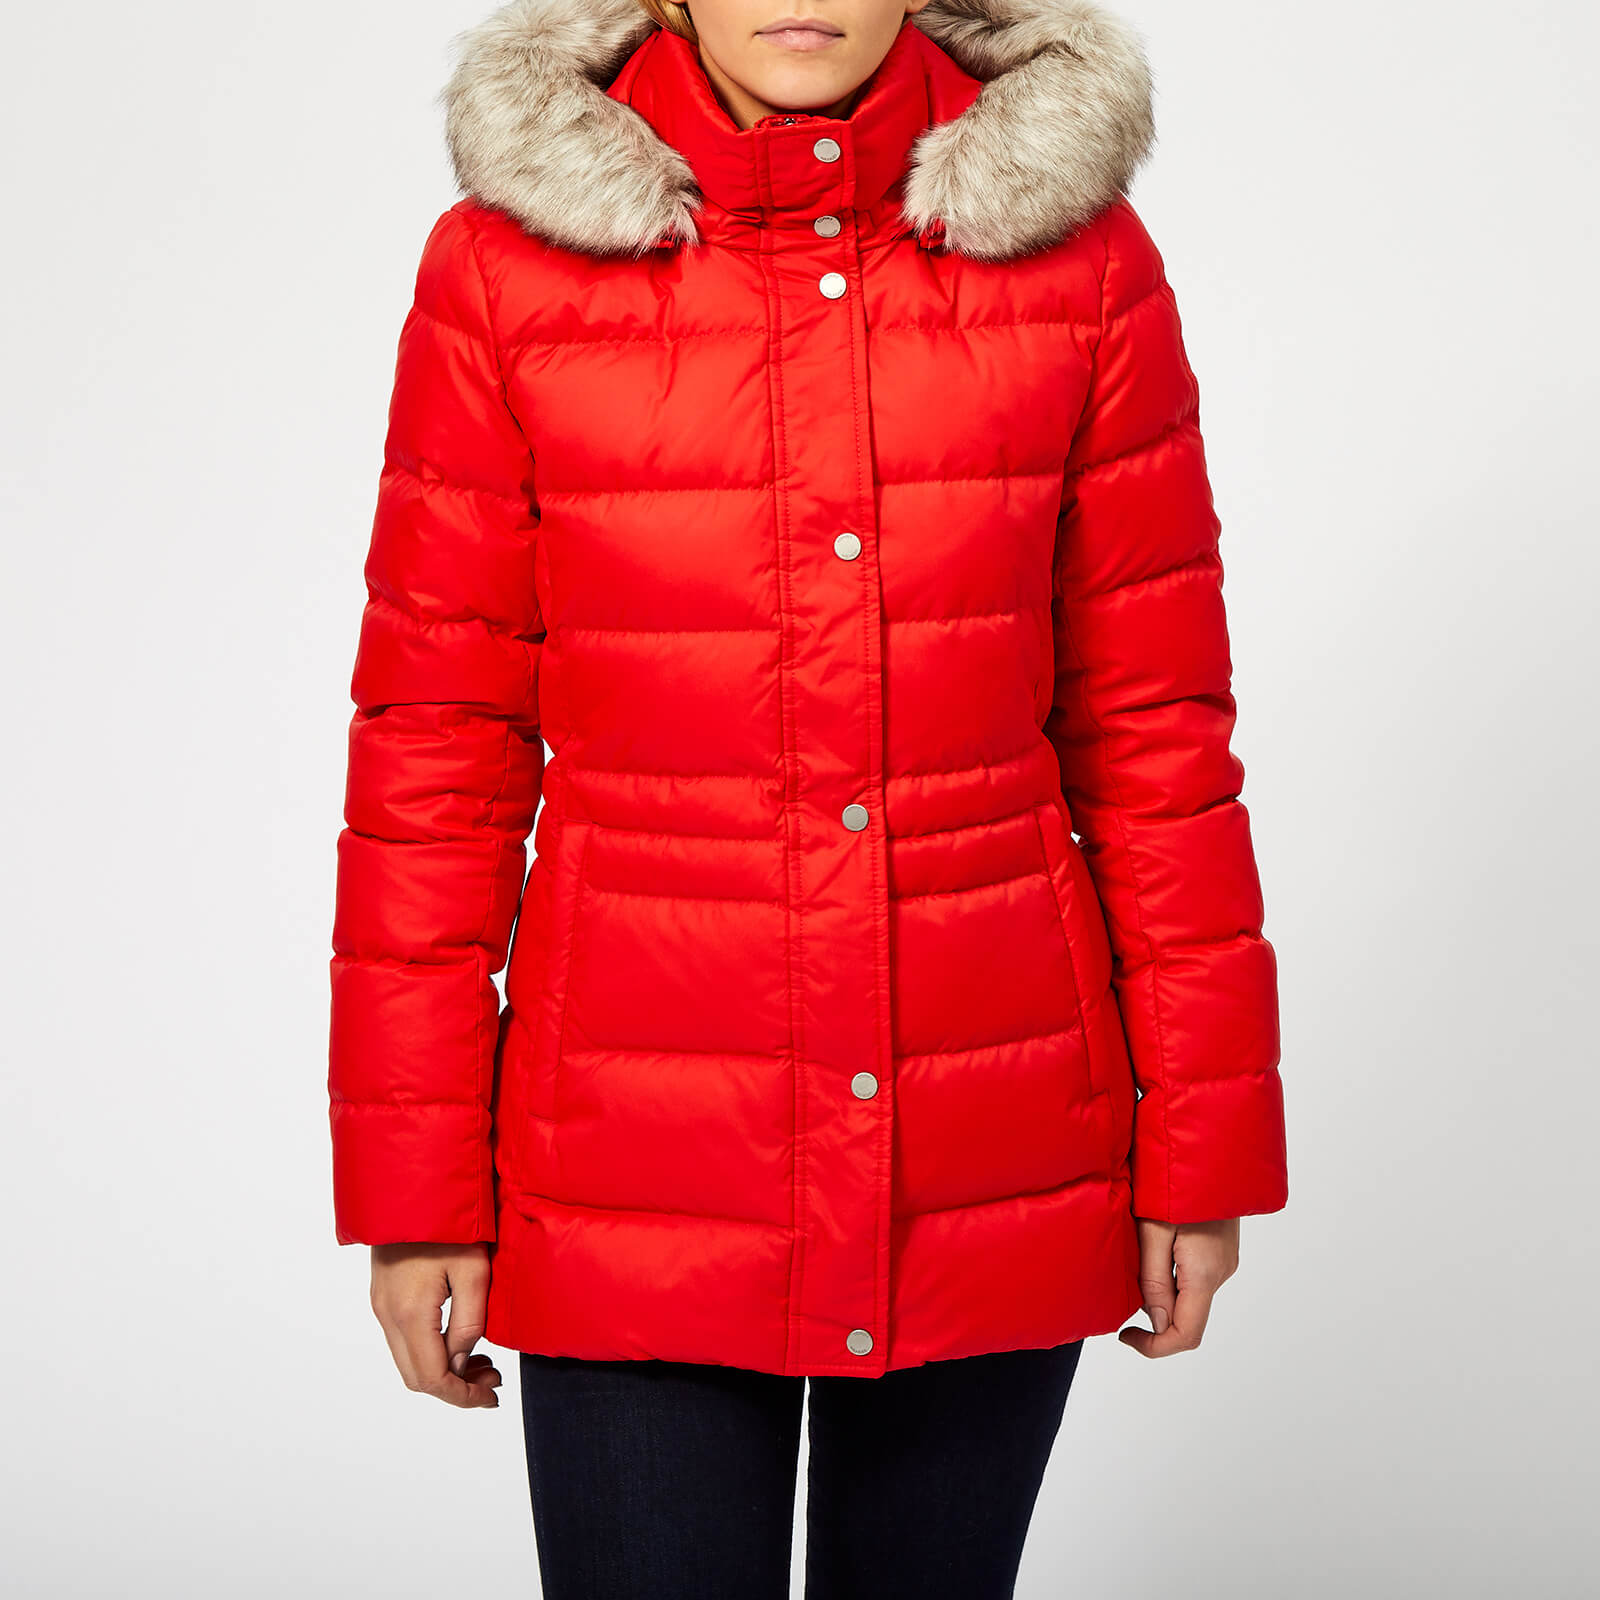 4cae4a2a Tommy Hilfiger Women's New Tyra Down Jacket - Flame Scarlet Womens Clothing  | TheHut.com